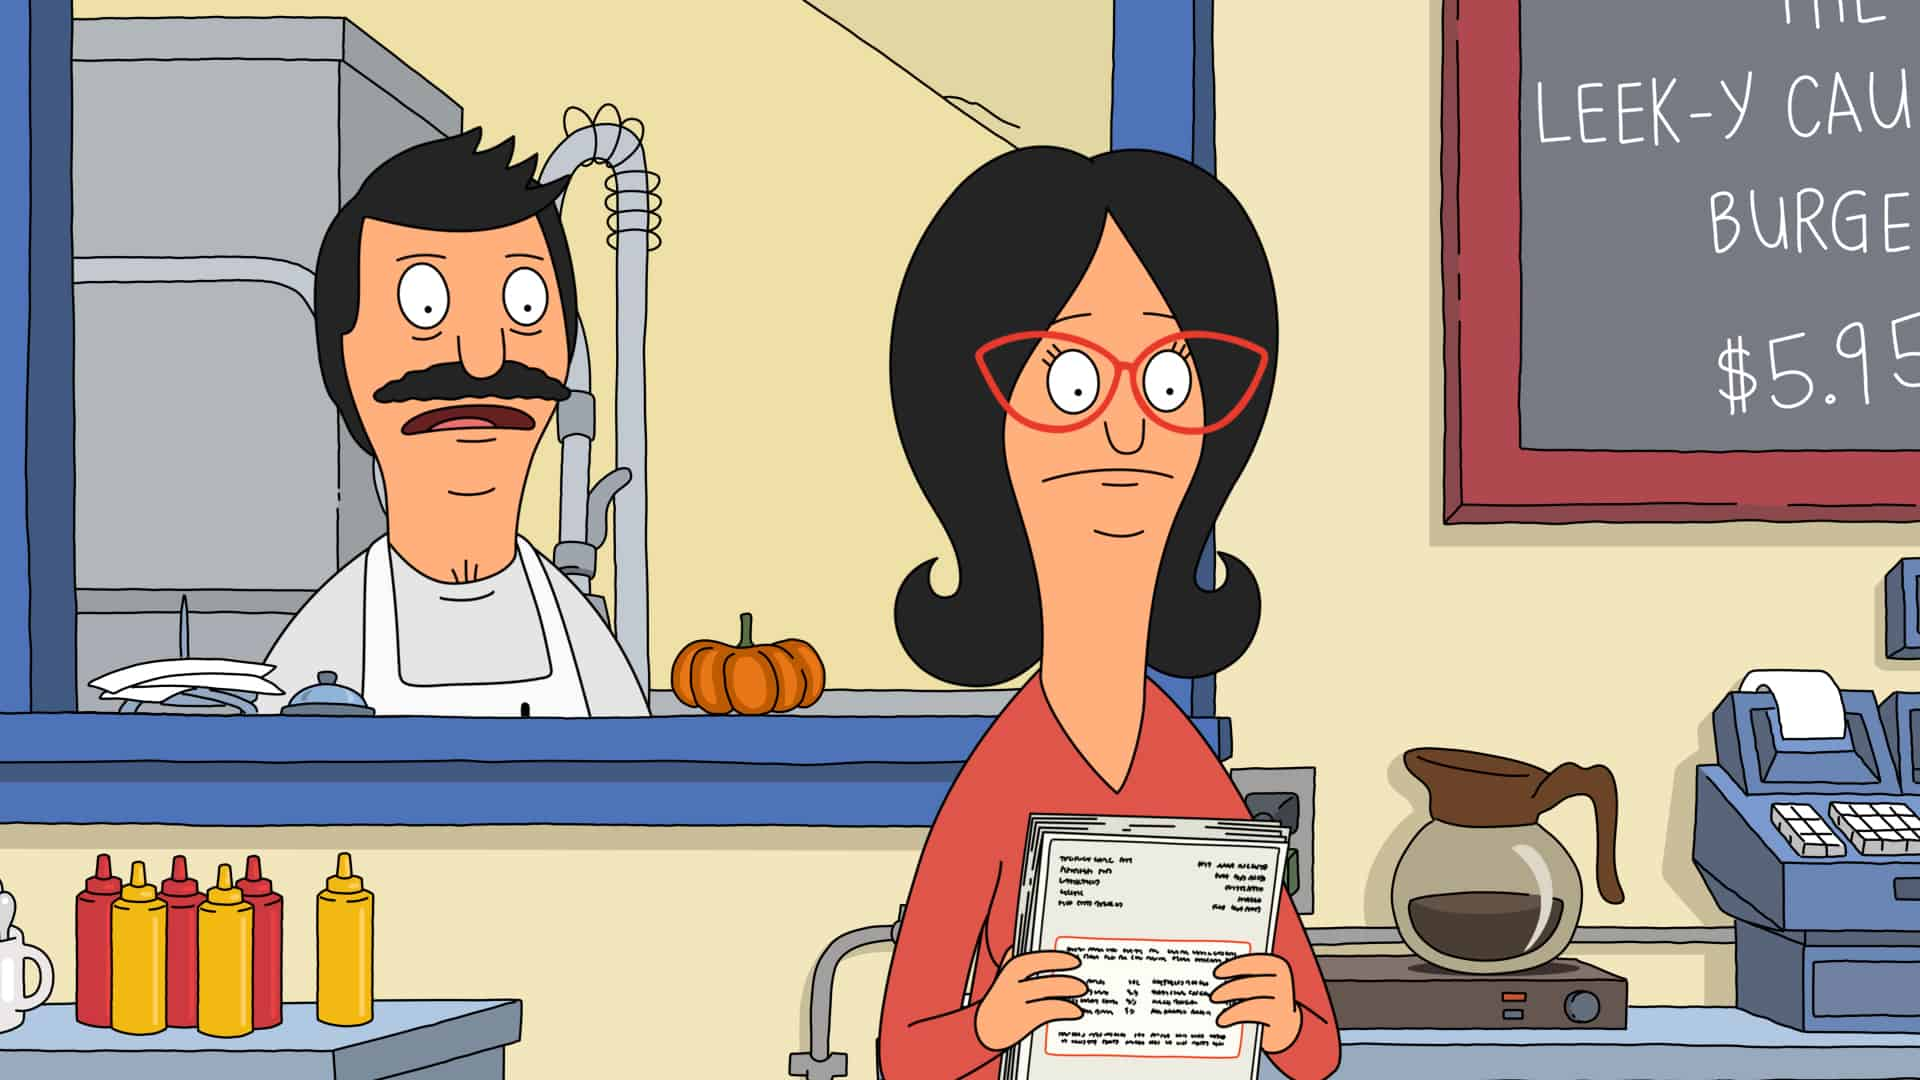 """BOB'S BURGERS Season 12 Episode 3: When a mysterious note is sent to Linda on Halloween, she and Gayle must travel to their hometown to face a wrong they committed 27 years ago in the """"The Pumpkinening"""" Halloween-themed episode of BOB'S BURGERS airing Sunday, Oct. 10 (9:00-9:30 PM ET/PT) on FOX. BOB'S BURGERS © 2021 by 20th Television."""